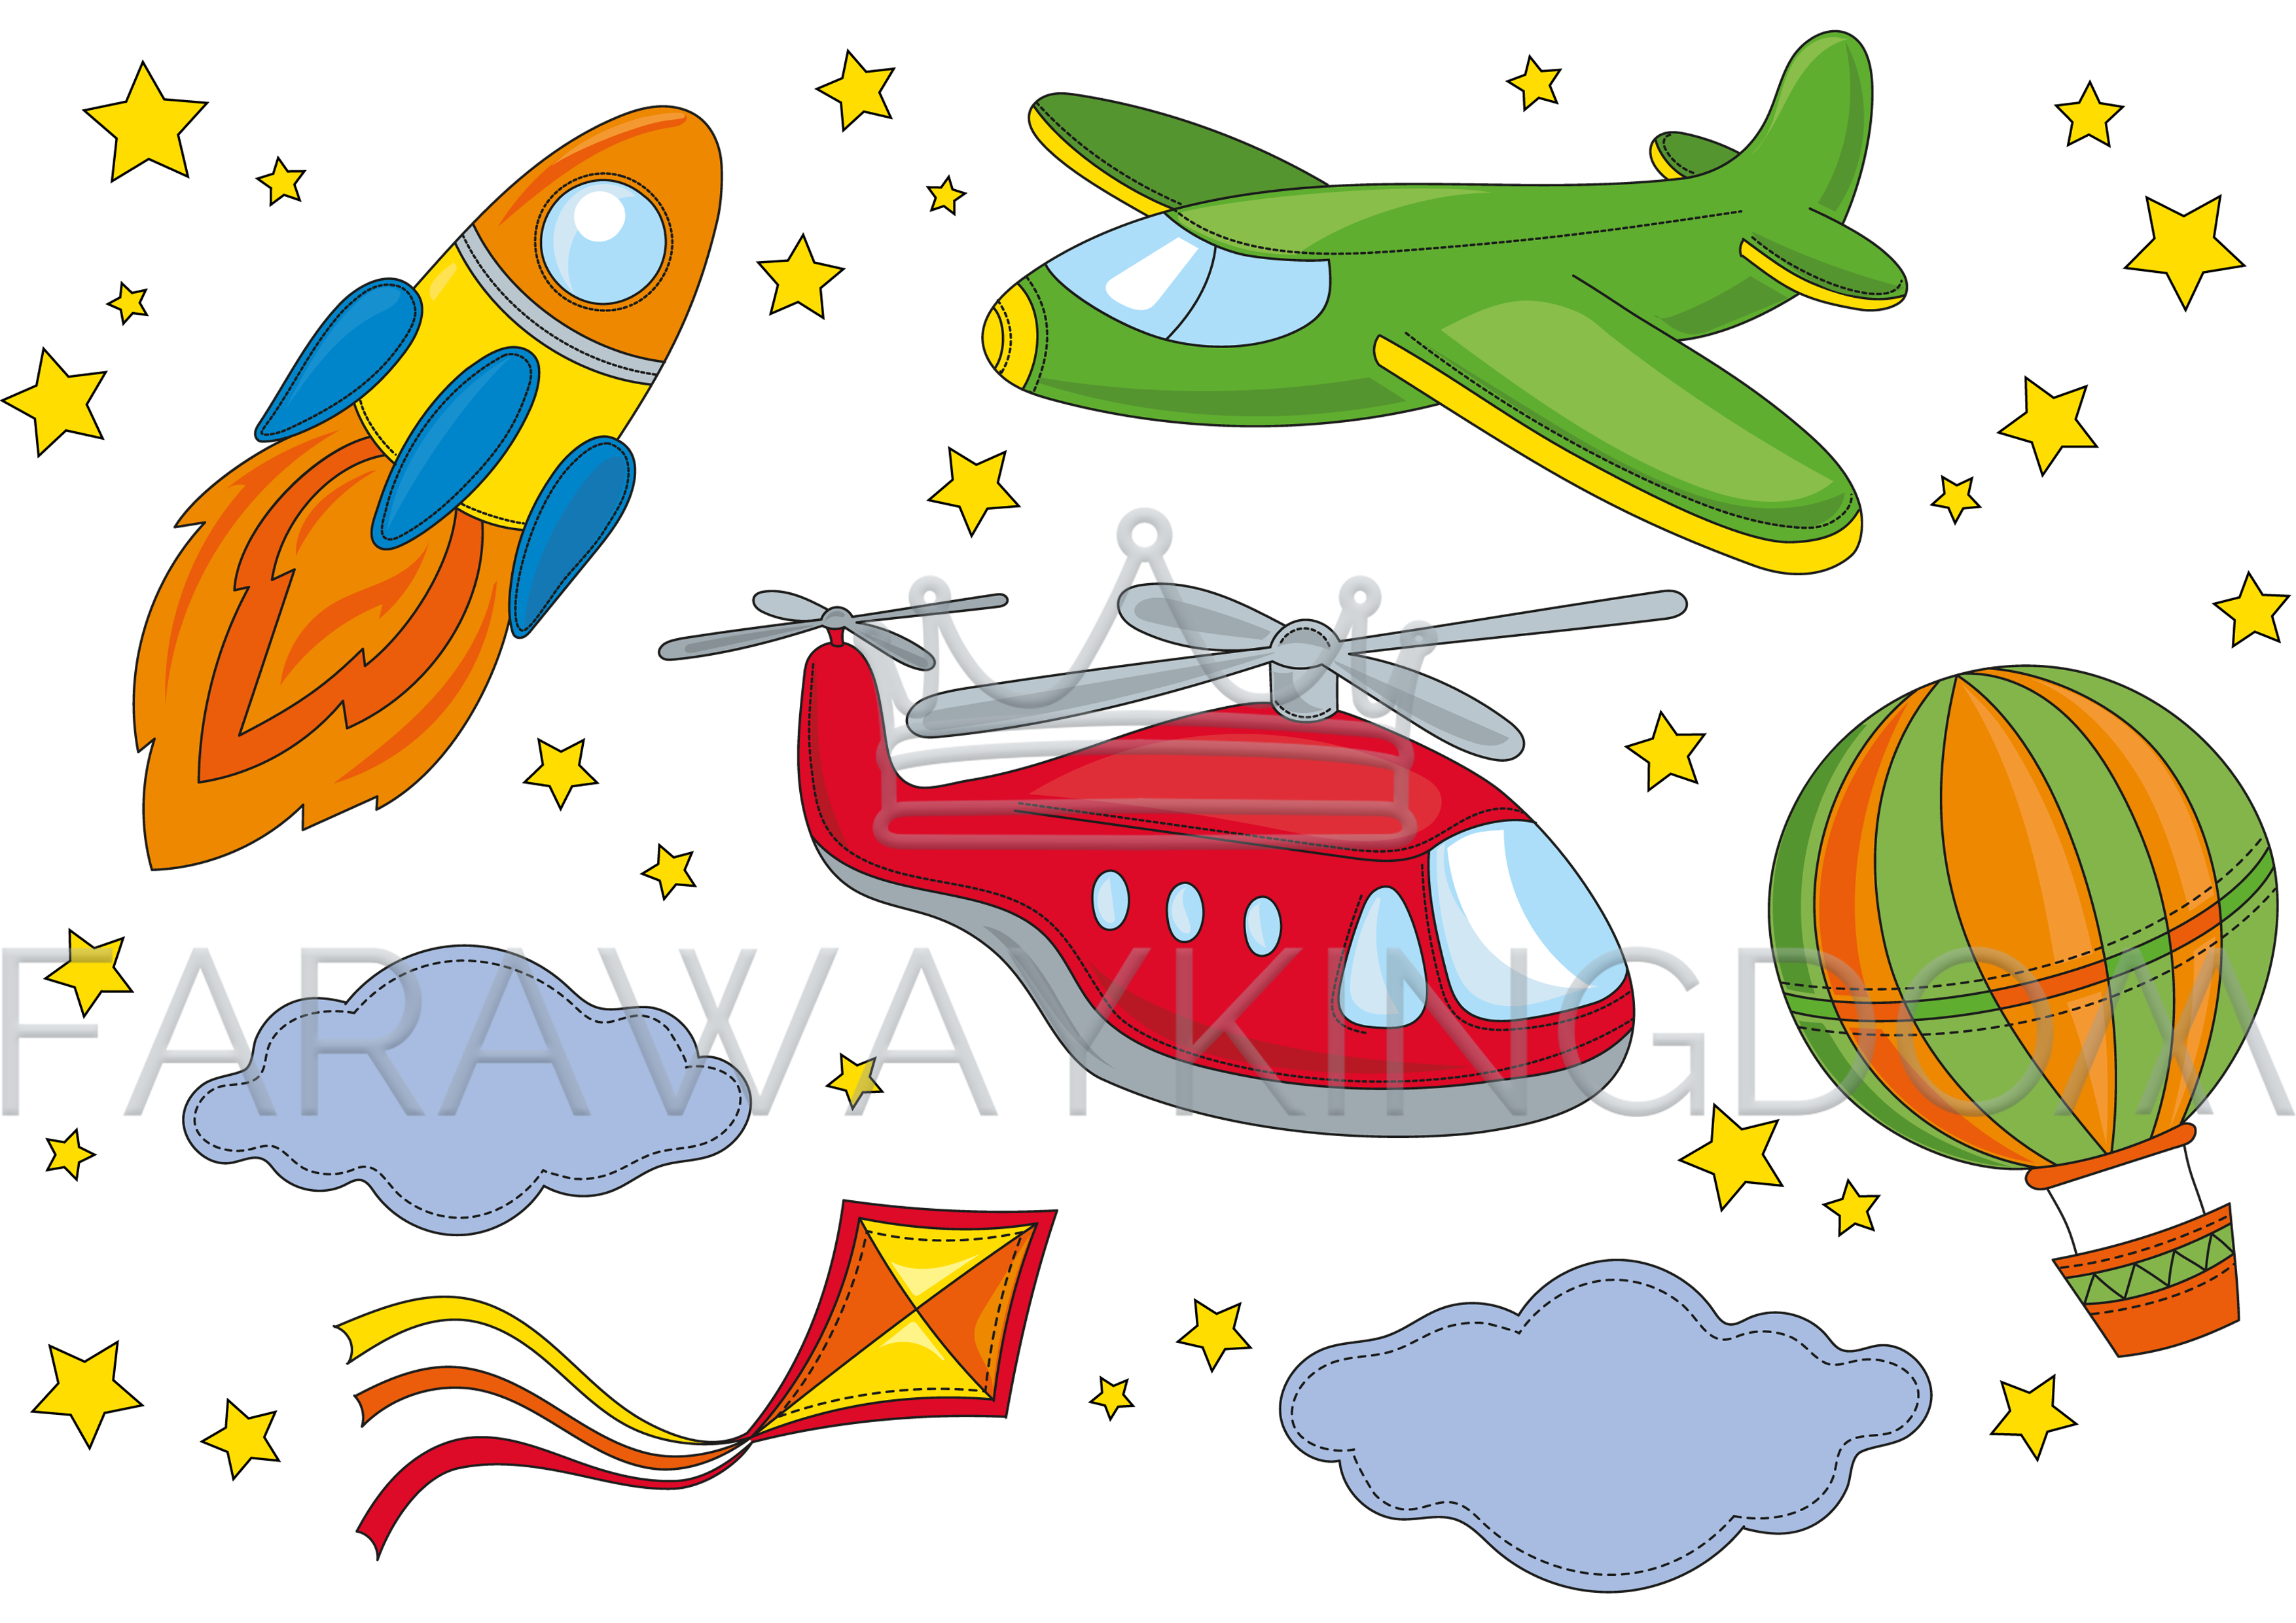 banner free download Vector aviation space. Fly air travel cartoon